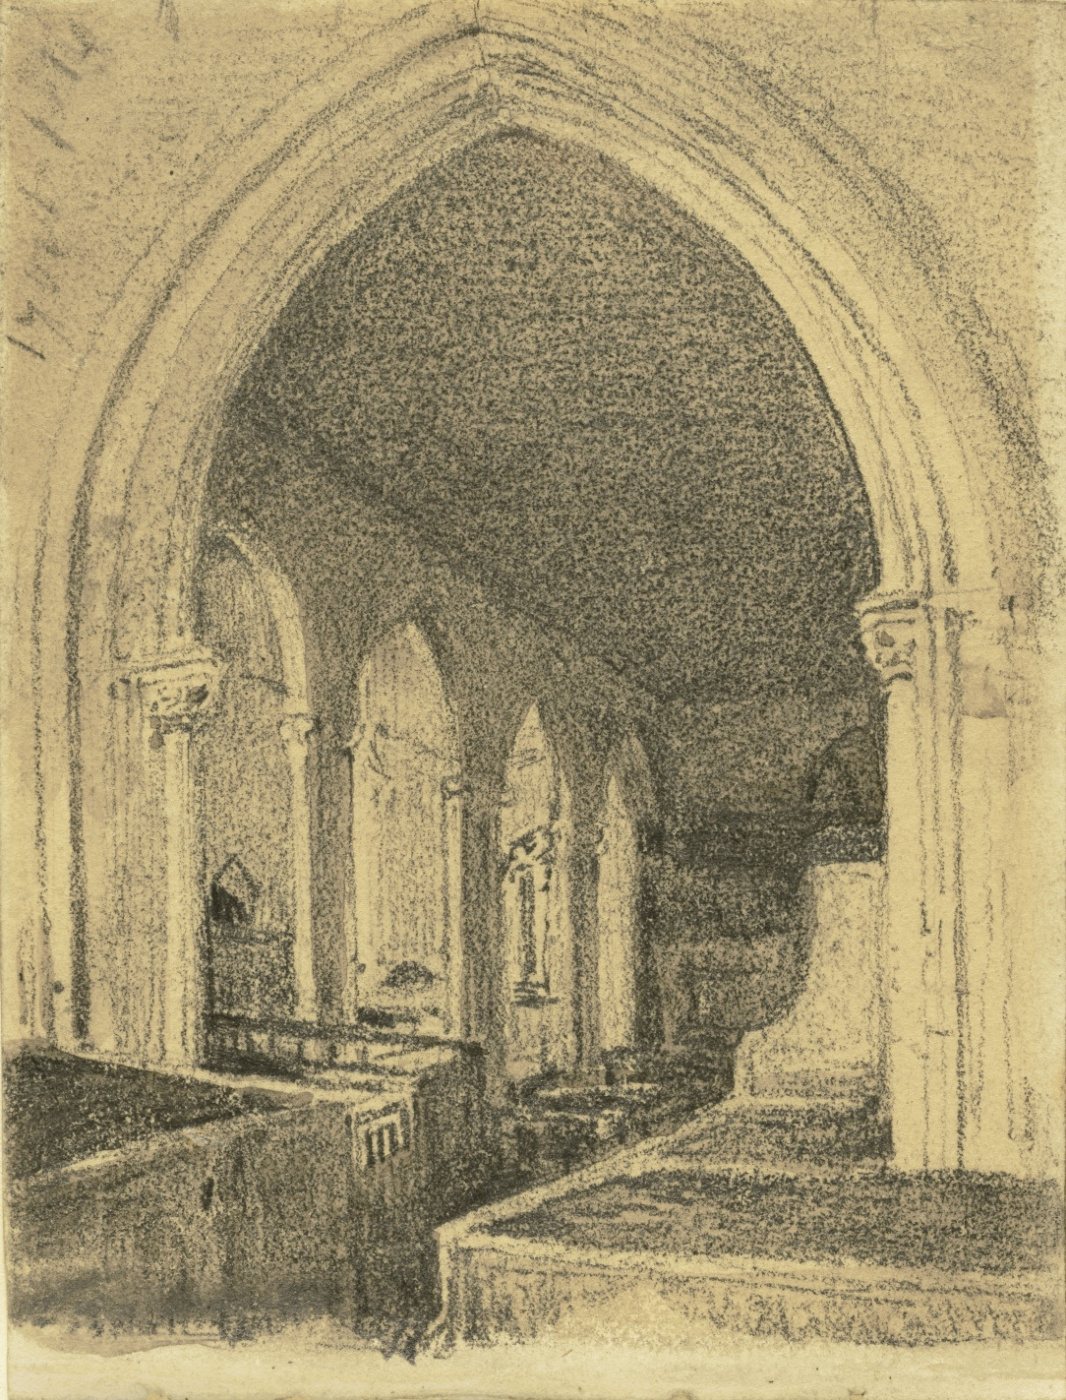 John Constable. The interior of the Church of St Andrew, Preston